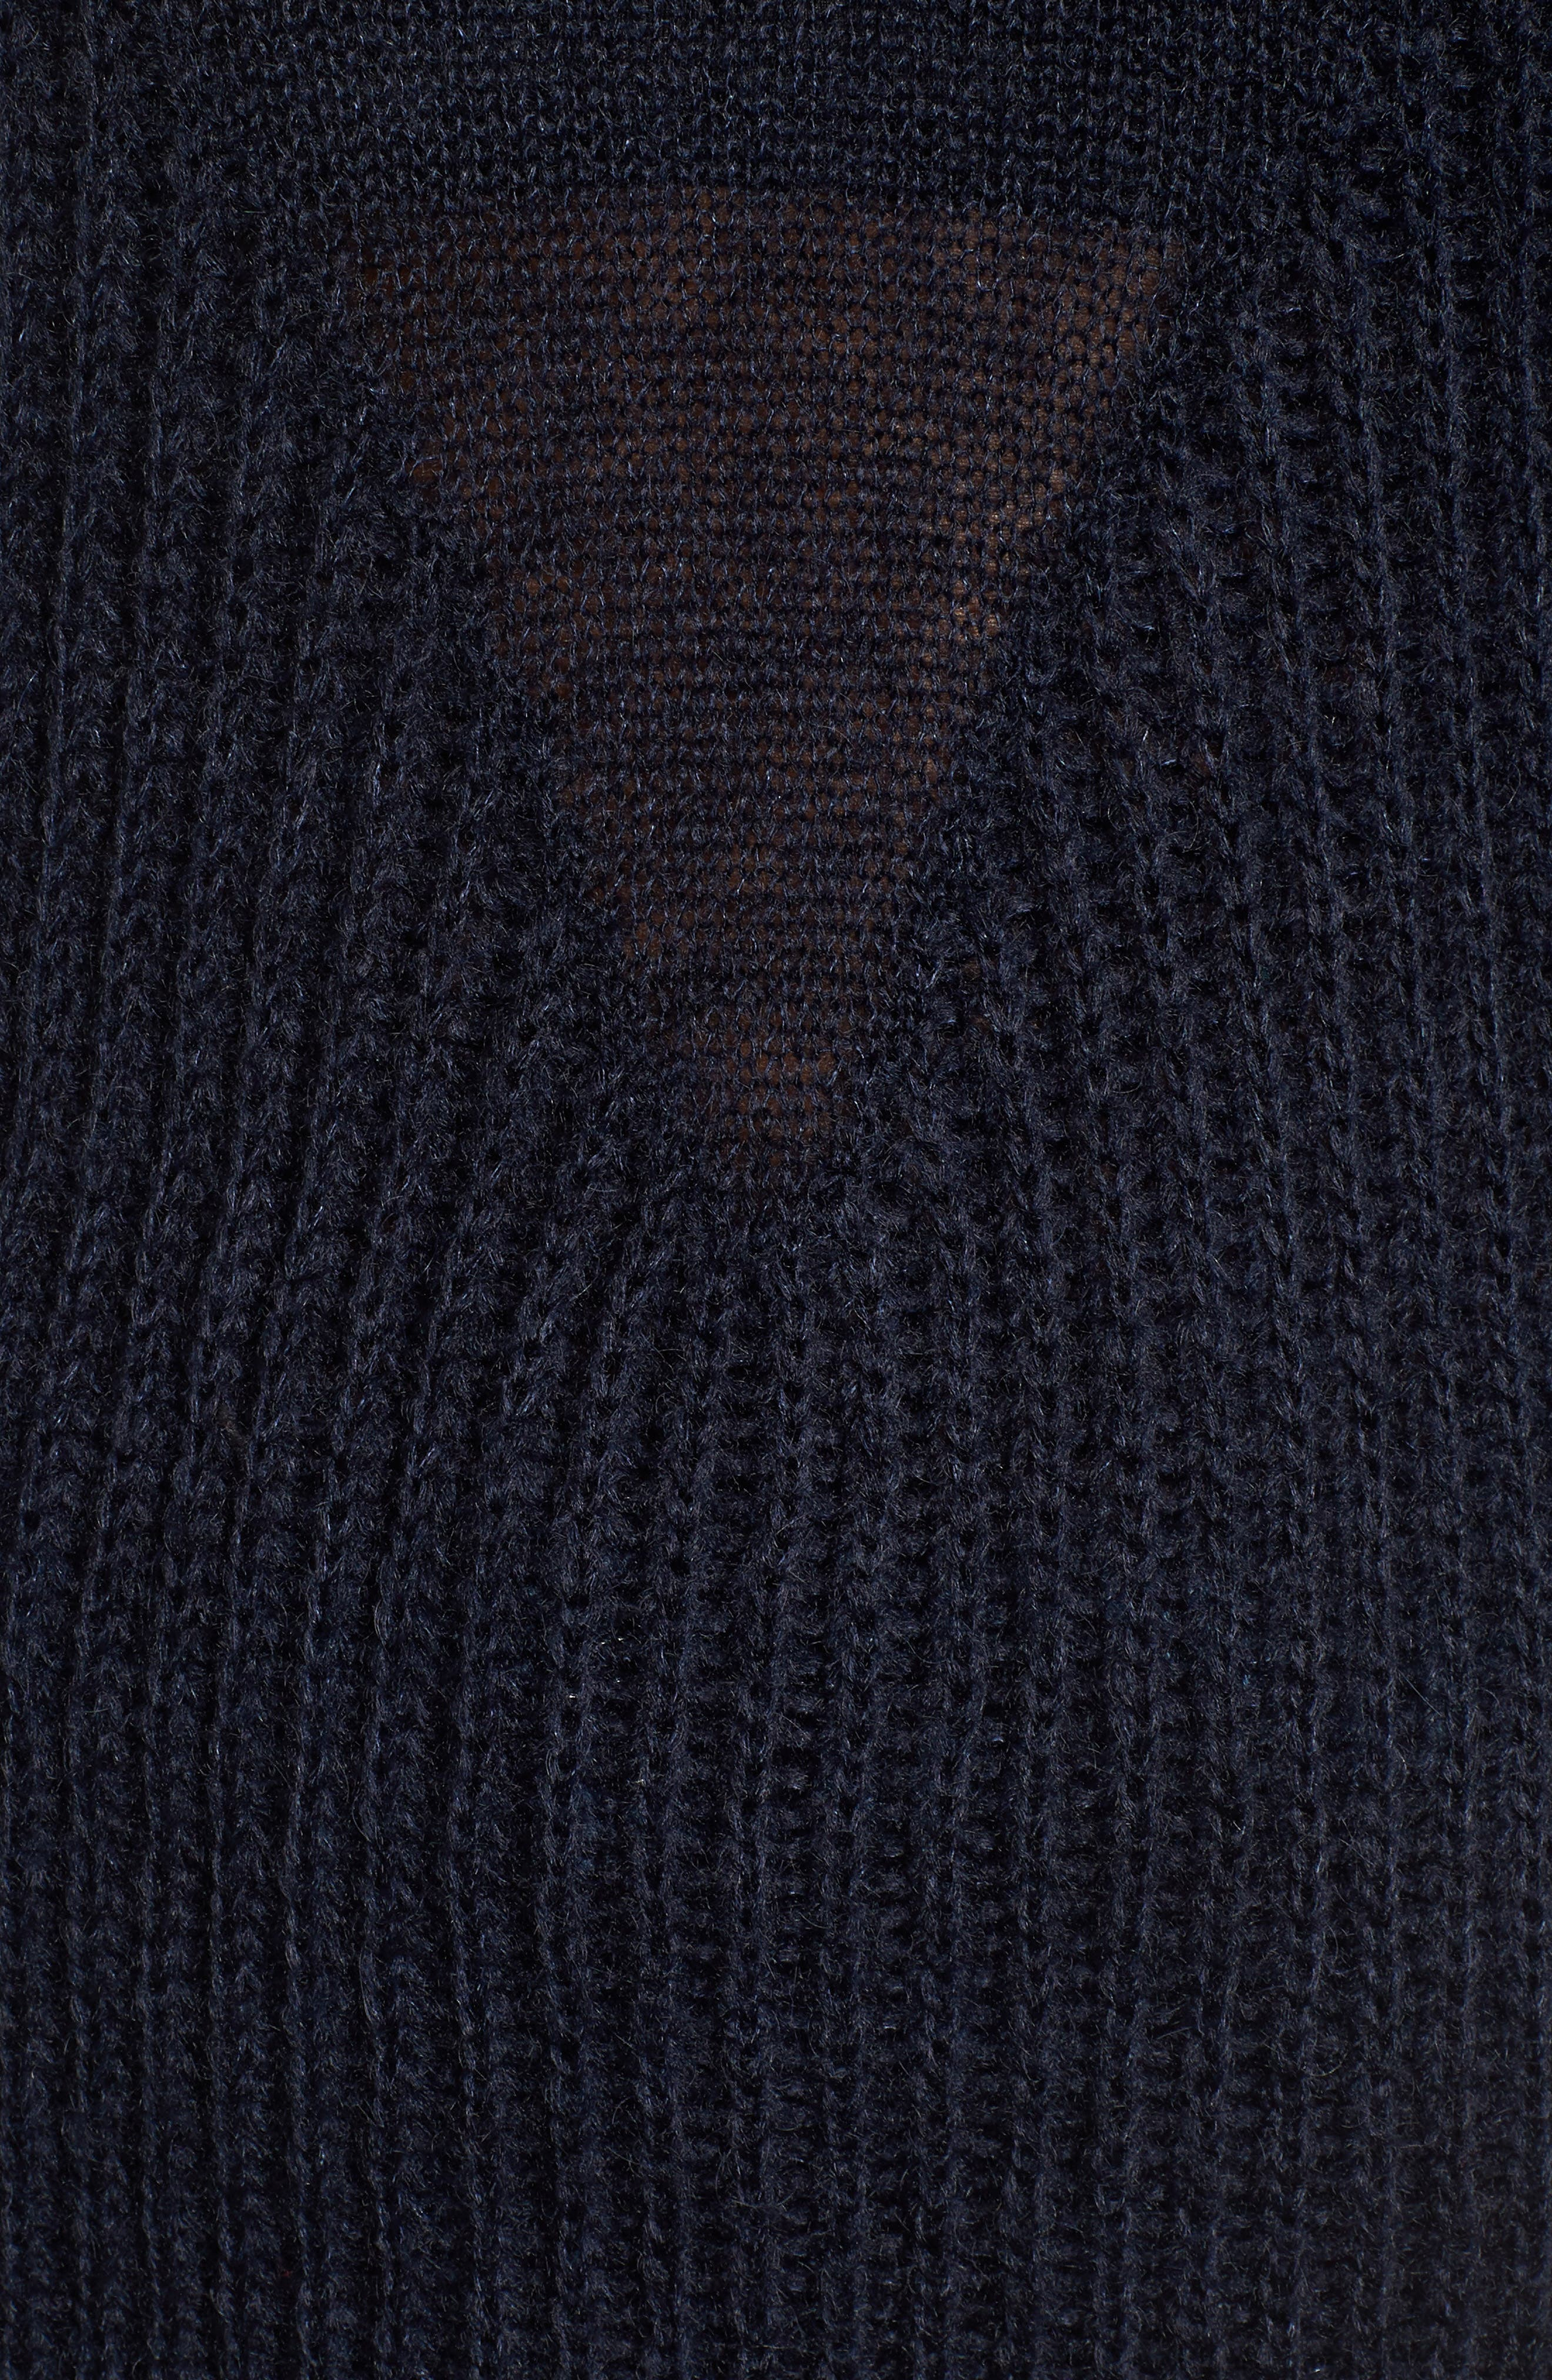 Fringed Sweater,                             Alternate thumbnail 5, color,                             400